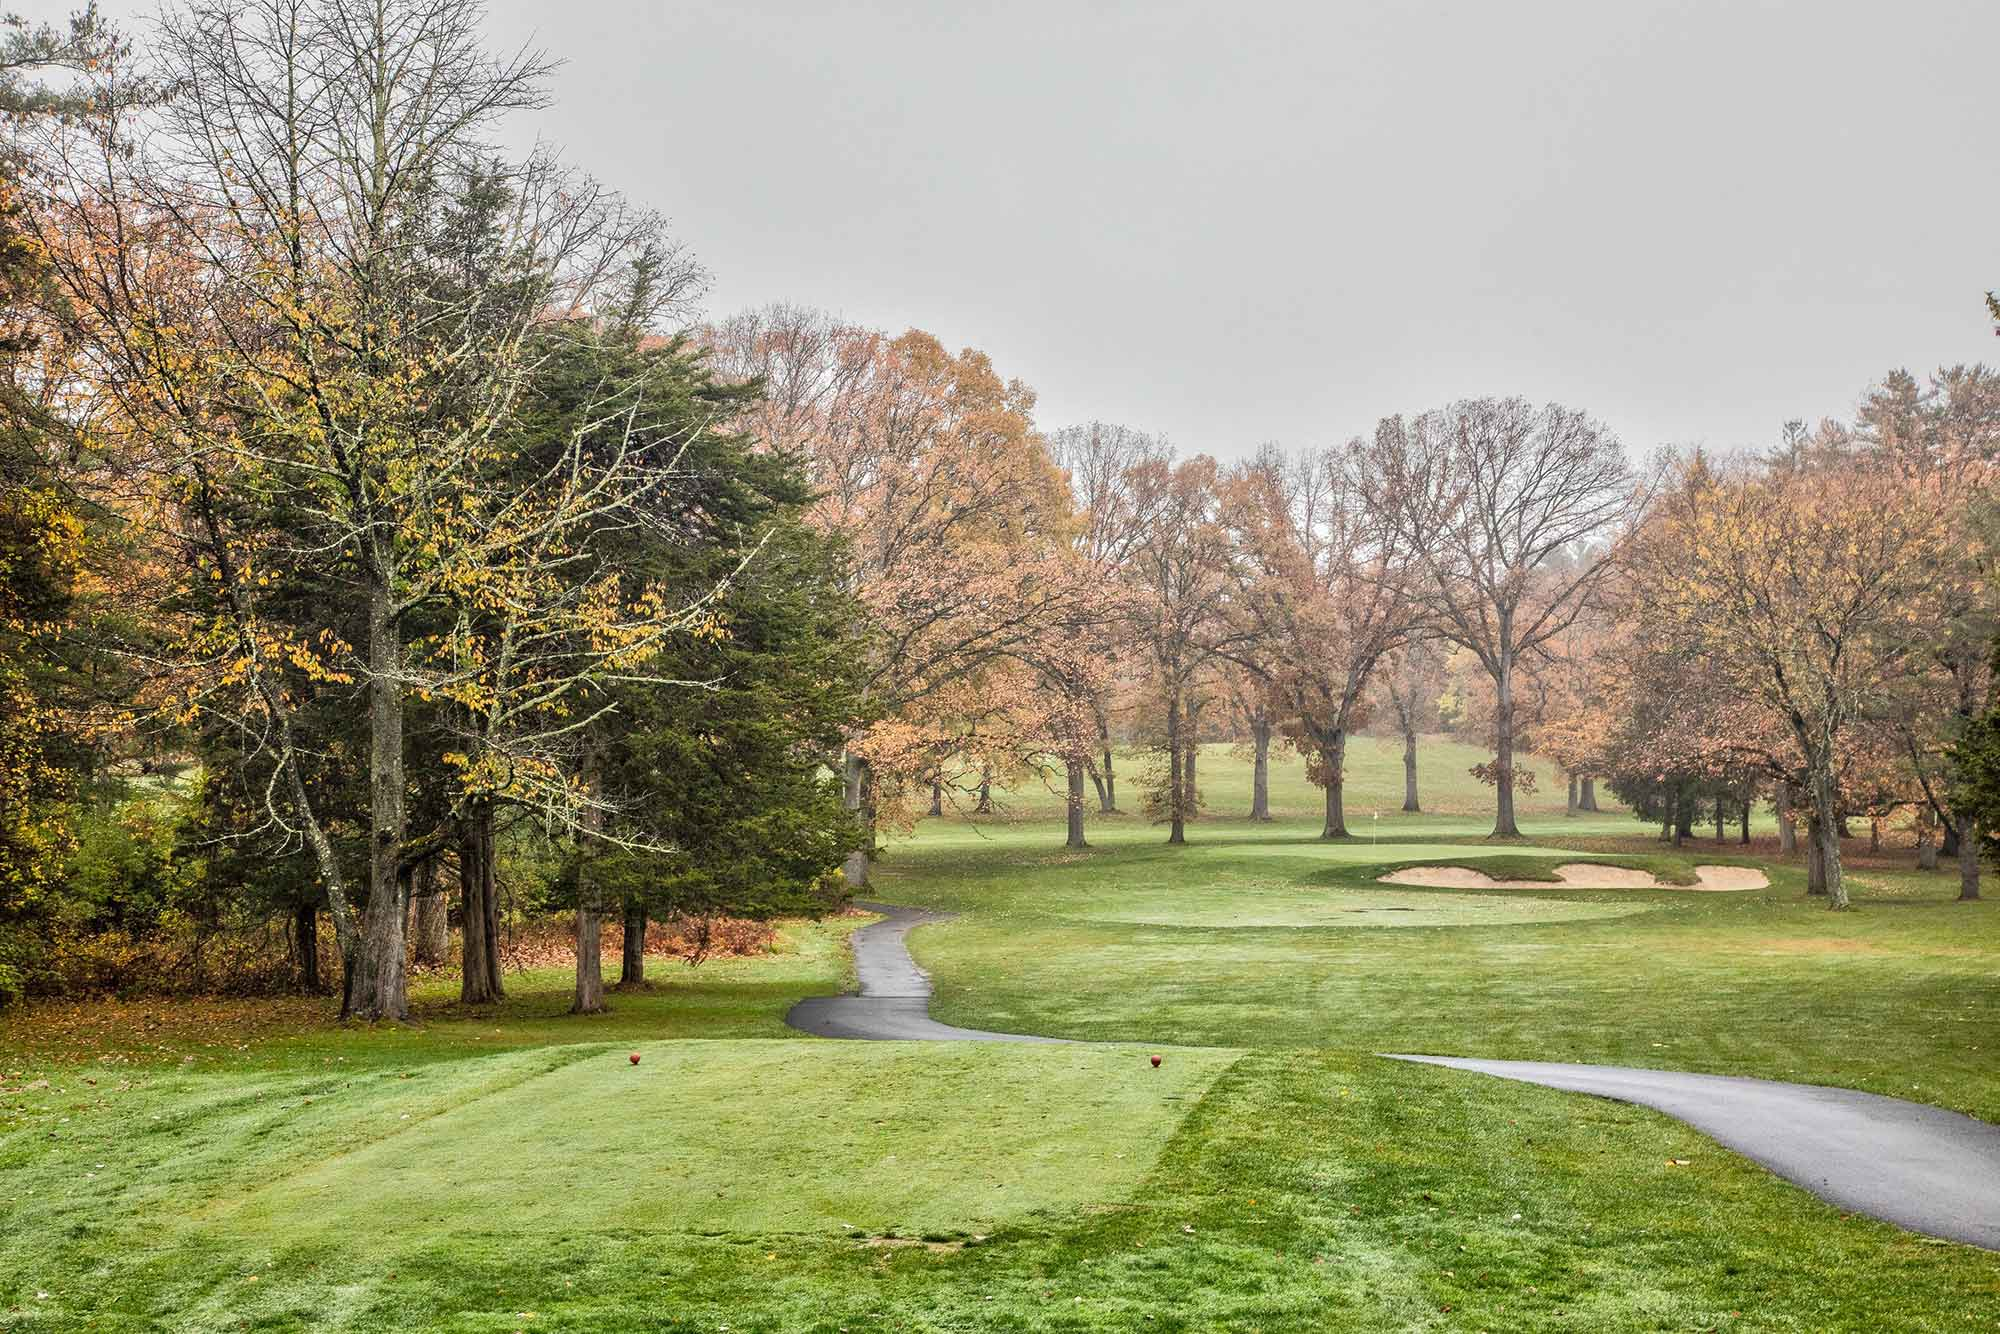 beautiful scenery of hole number 5 at Wiltwyck in Kingston NY